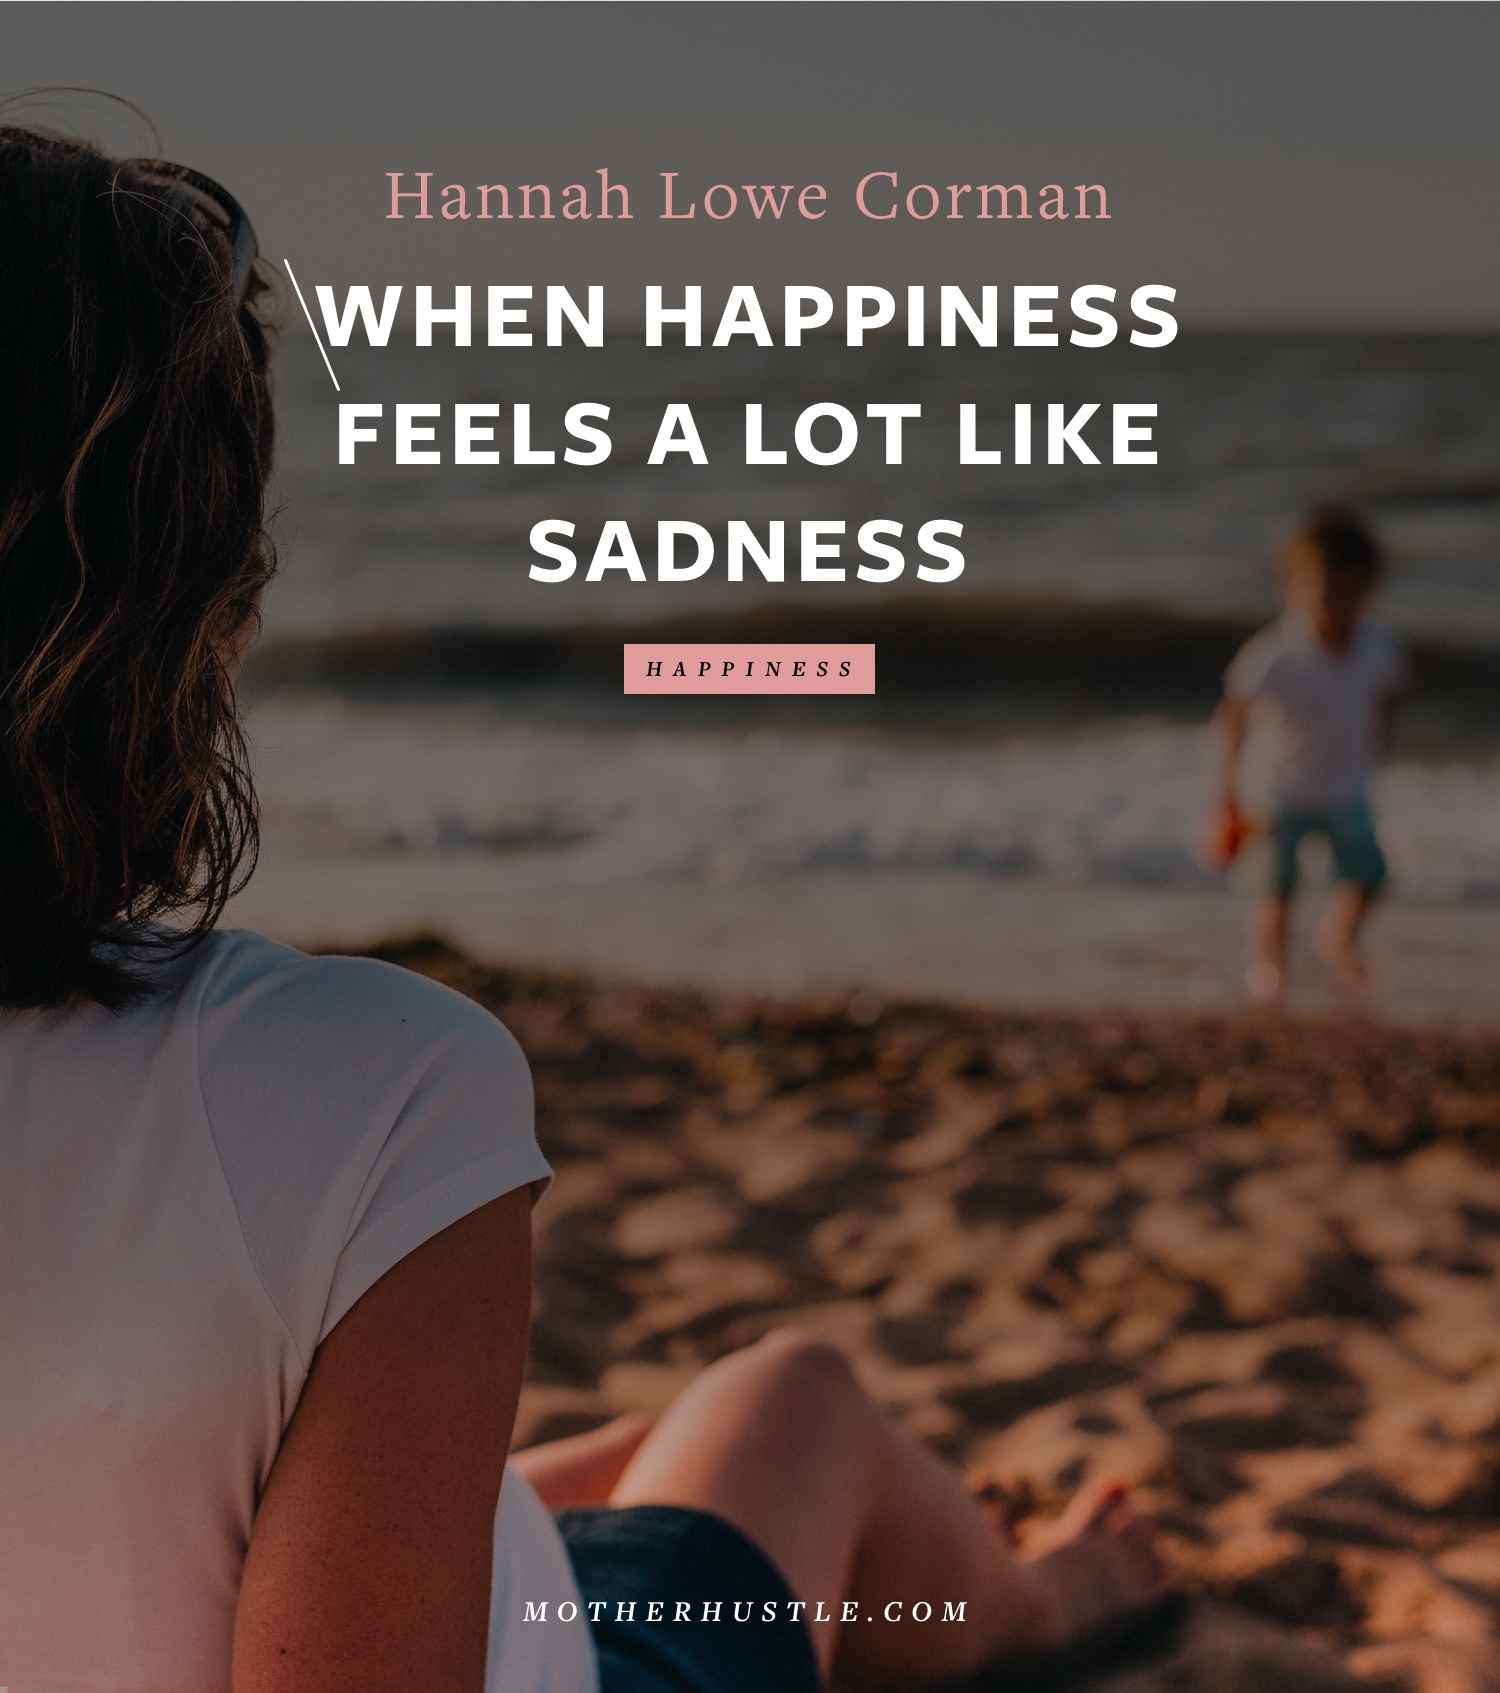 When Happiness Feels A Lot Like Sadness - by Hannah Lowe Corman for MotherHustle